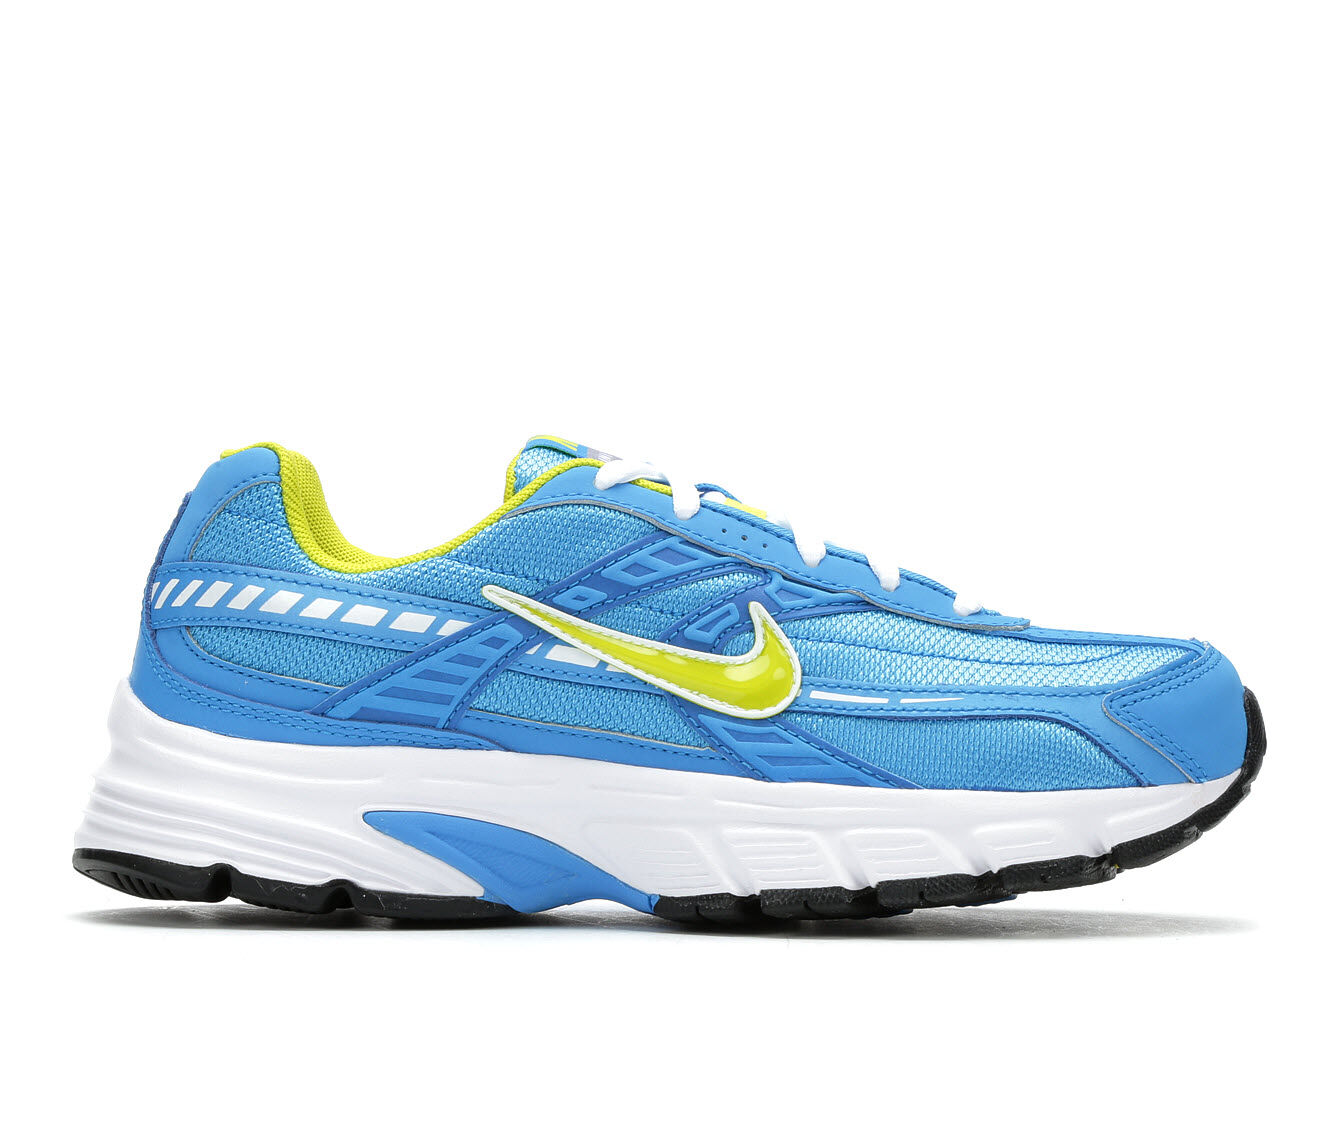 Women's Nike Initiator Running Shoes Blu/Volt 481